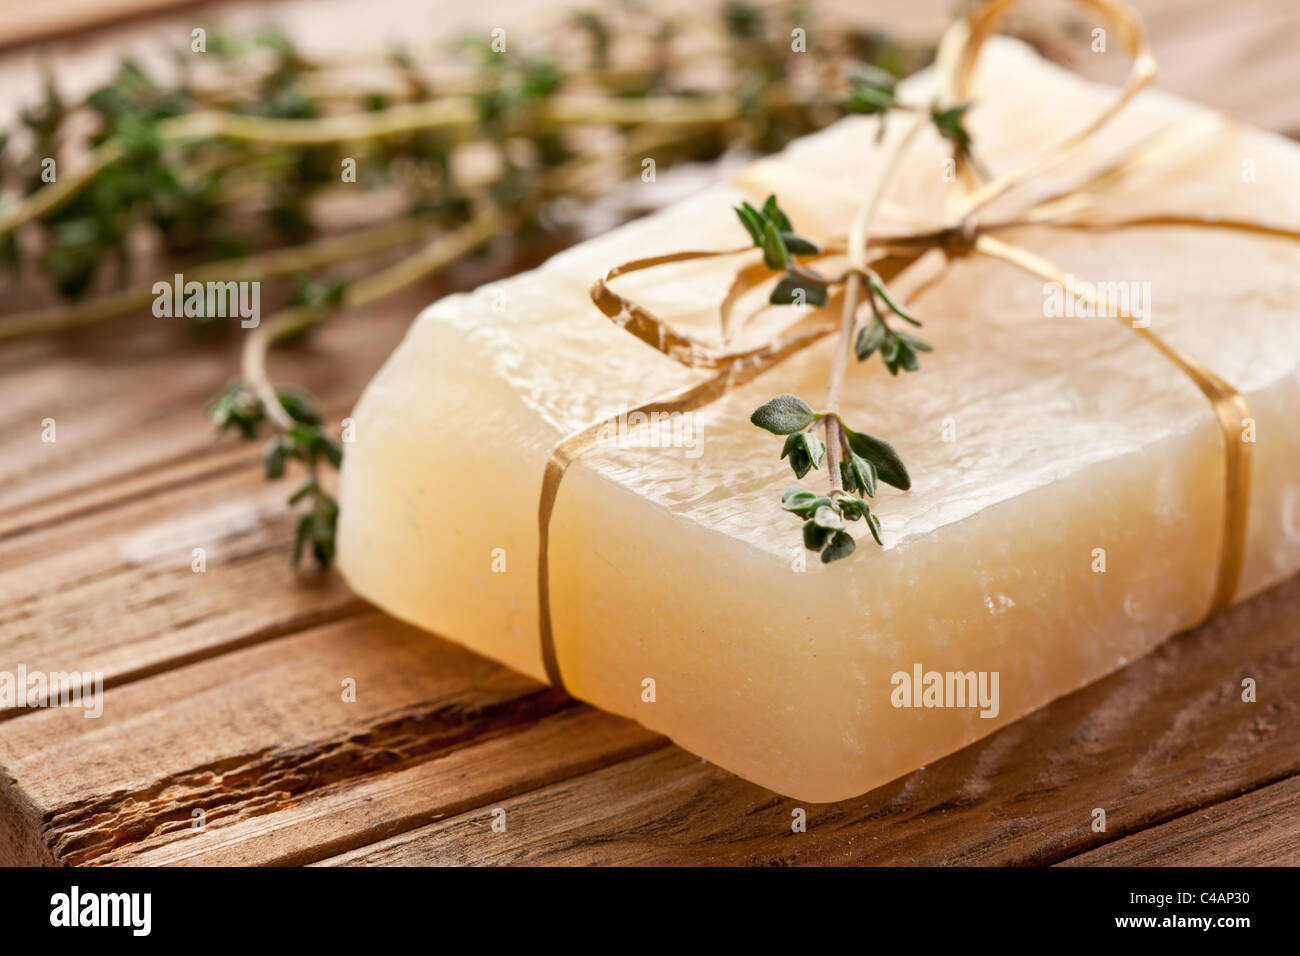 Piece of natural soap with thyme. - Stock Image